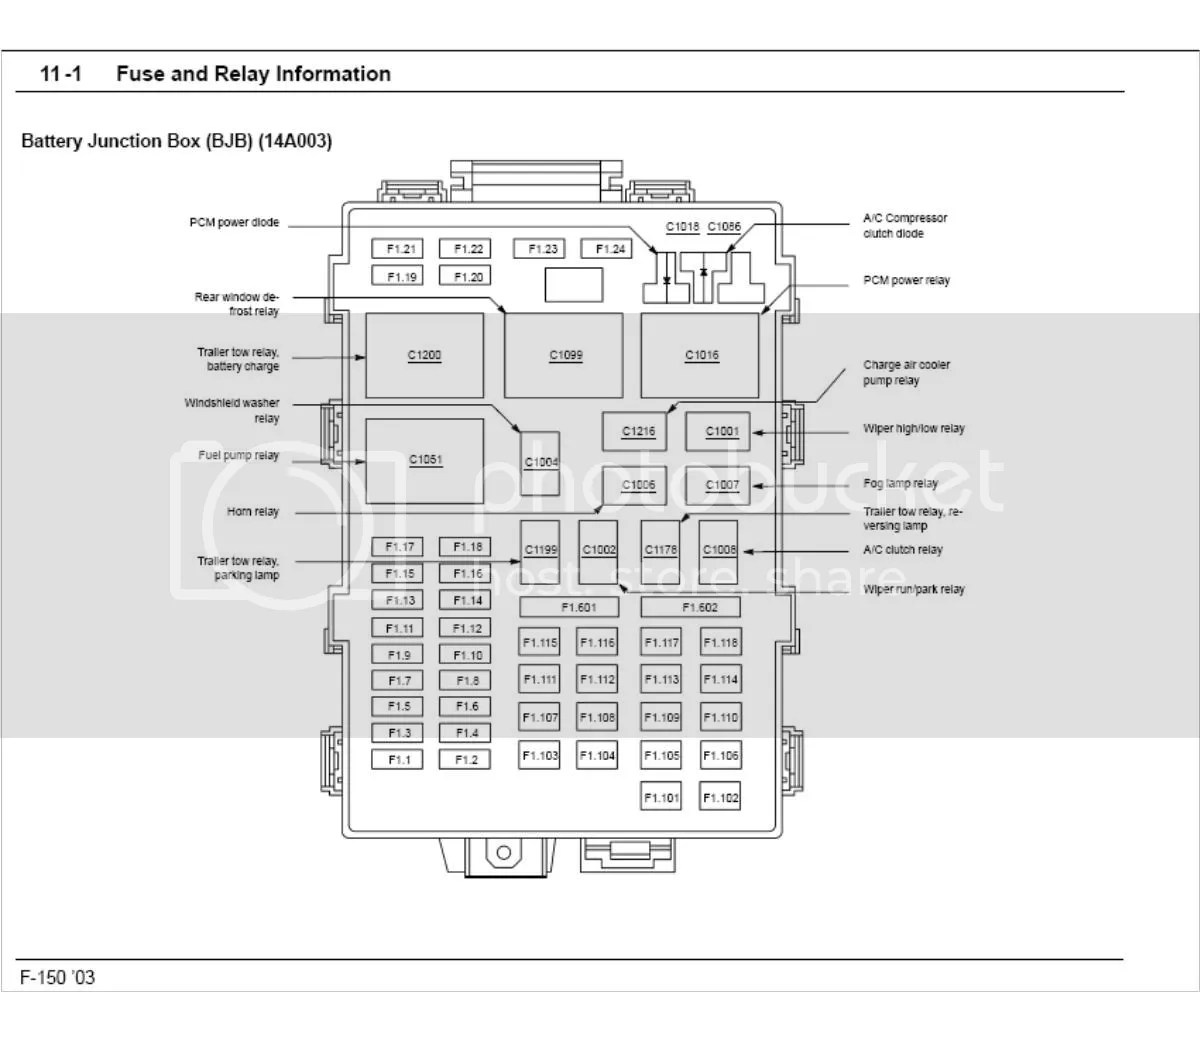 2000 Ford F650 Fuse Diagram. 2000 ford f650 fuse box